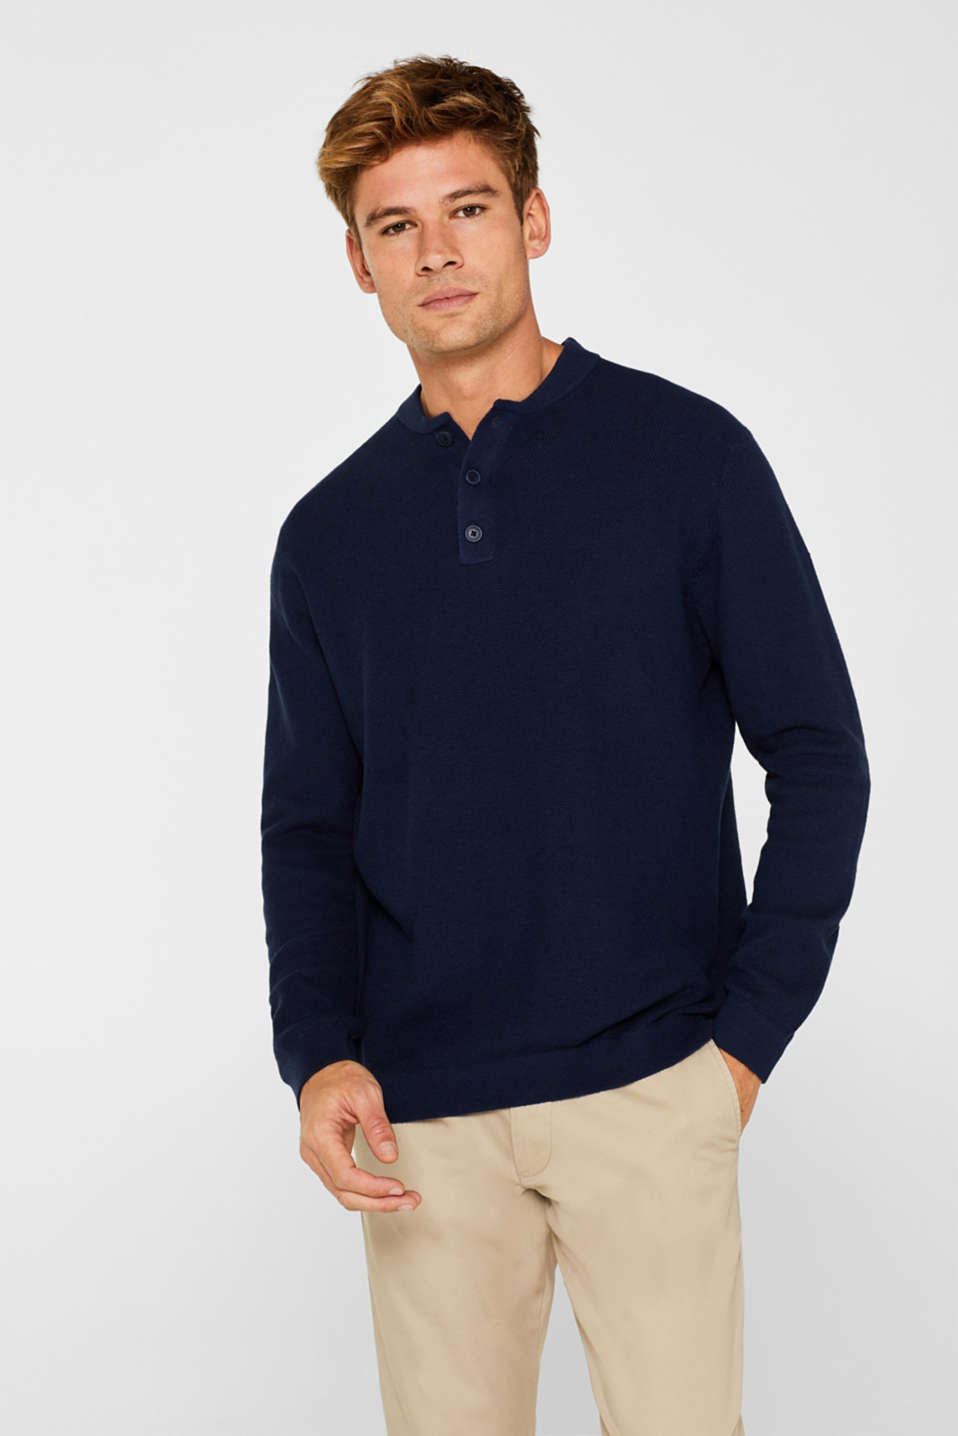 Esprit - With cashmere: Jumper with texture